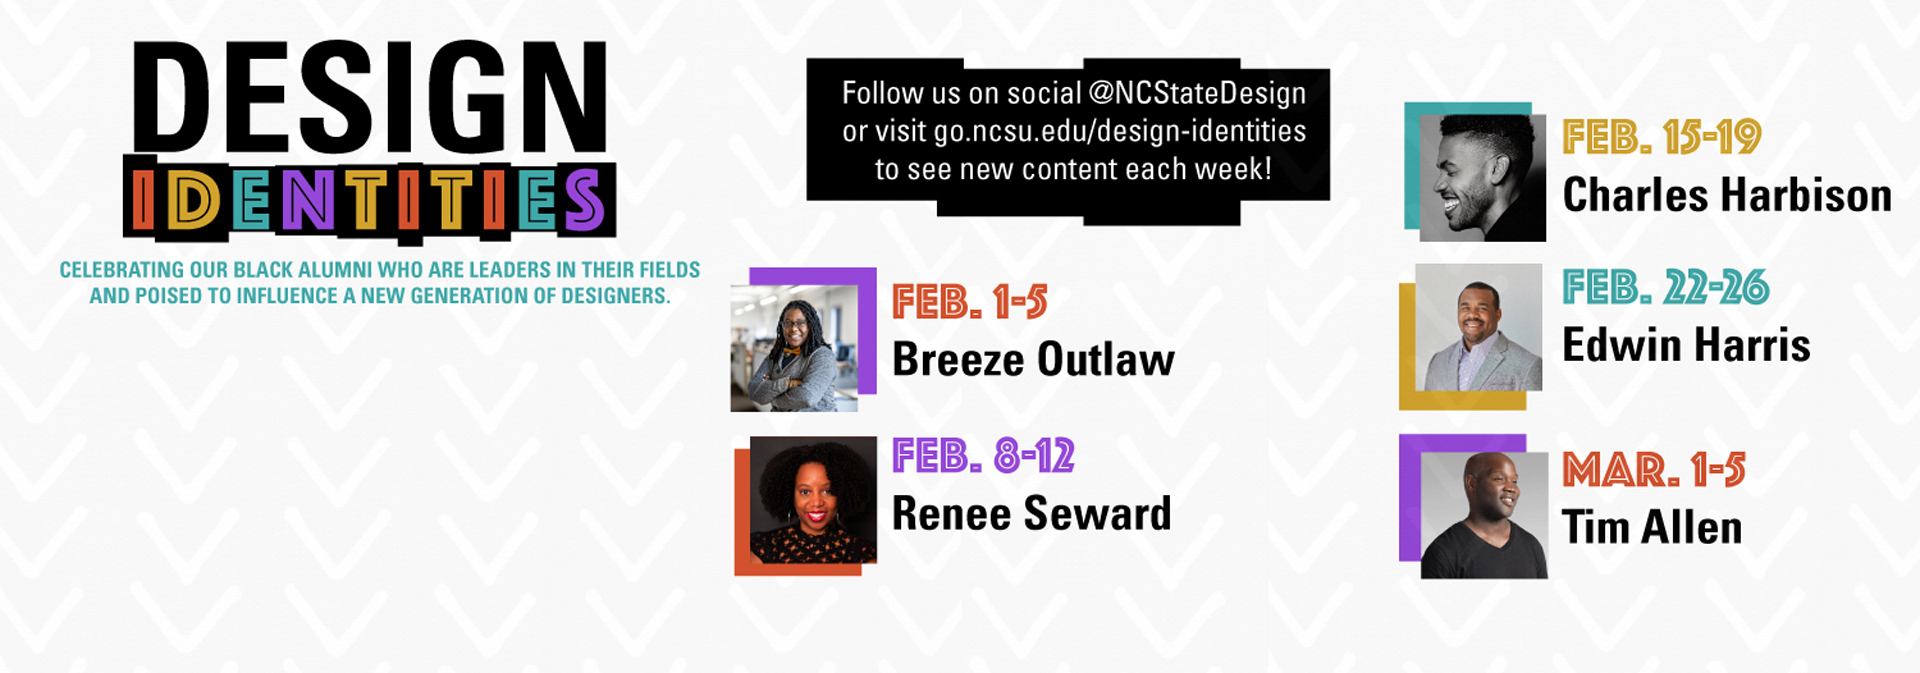 Join us online for our Design Identities virtual exhibition, online from February 1 through March 5, 2021. These recorded interviews are asynchronous, so watch at any time. Each week will feature an interview between a current College of Design student and a distinguished Black alumnus. Follow NC State Design on Instagram, Facebook, and Twitter to see interviews, career photos, and more released each week, or visit the website to read more about each designer. New content will be added each week.